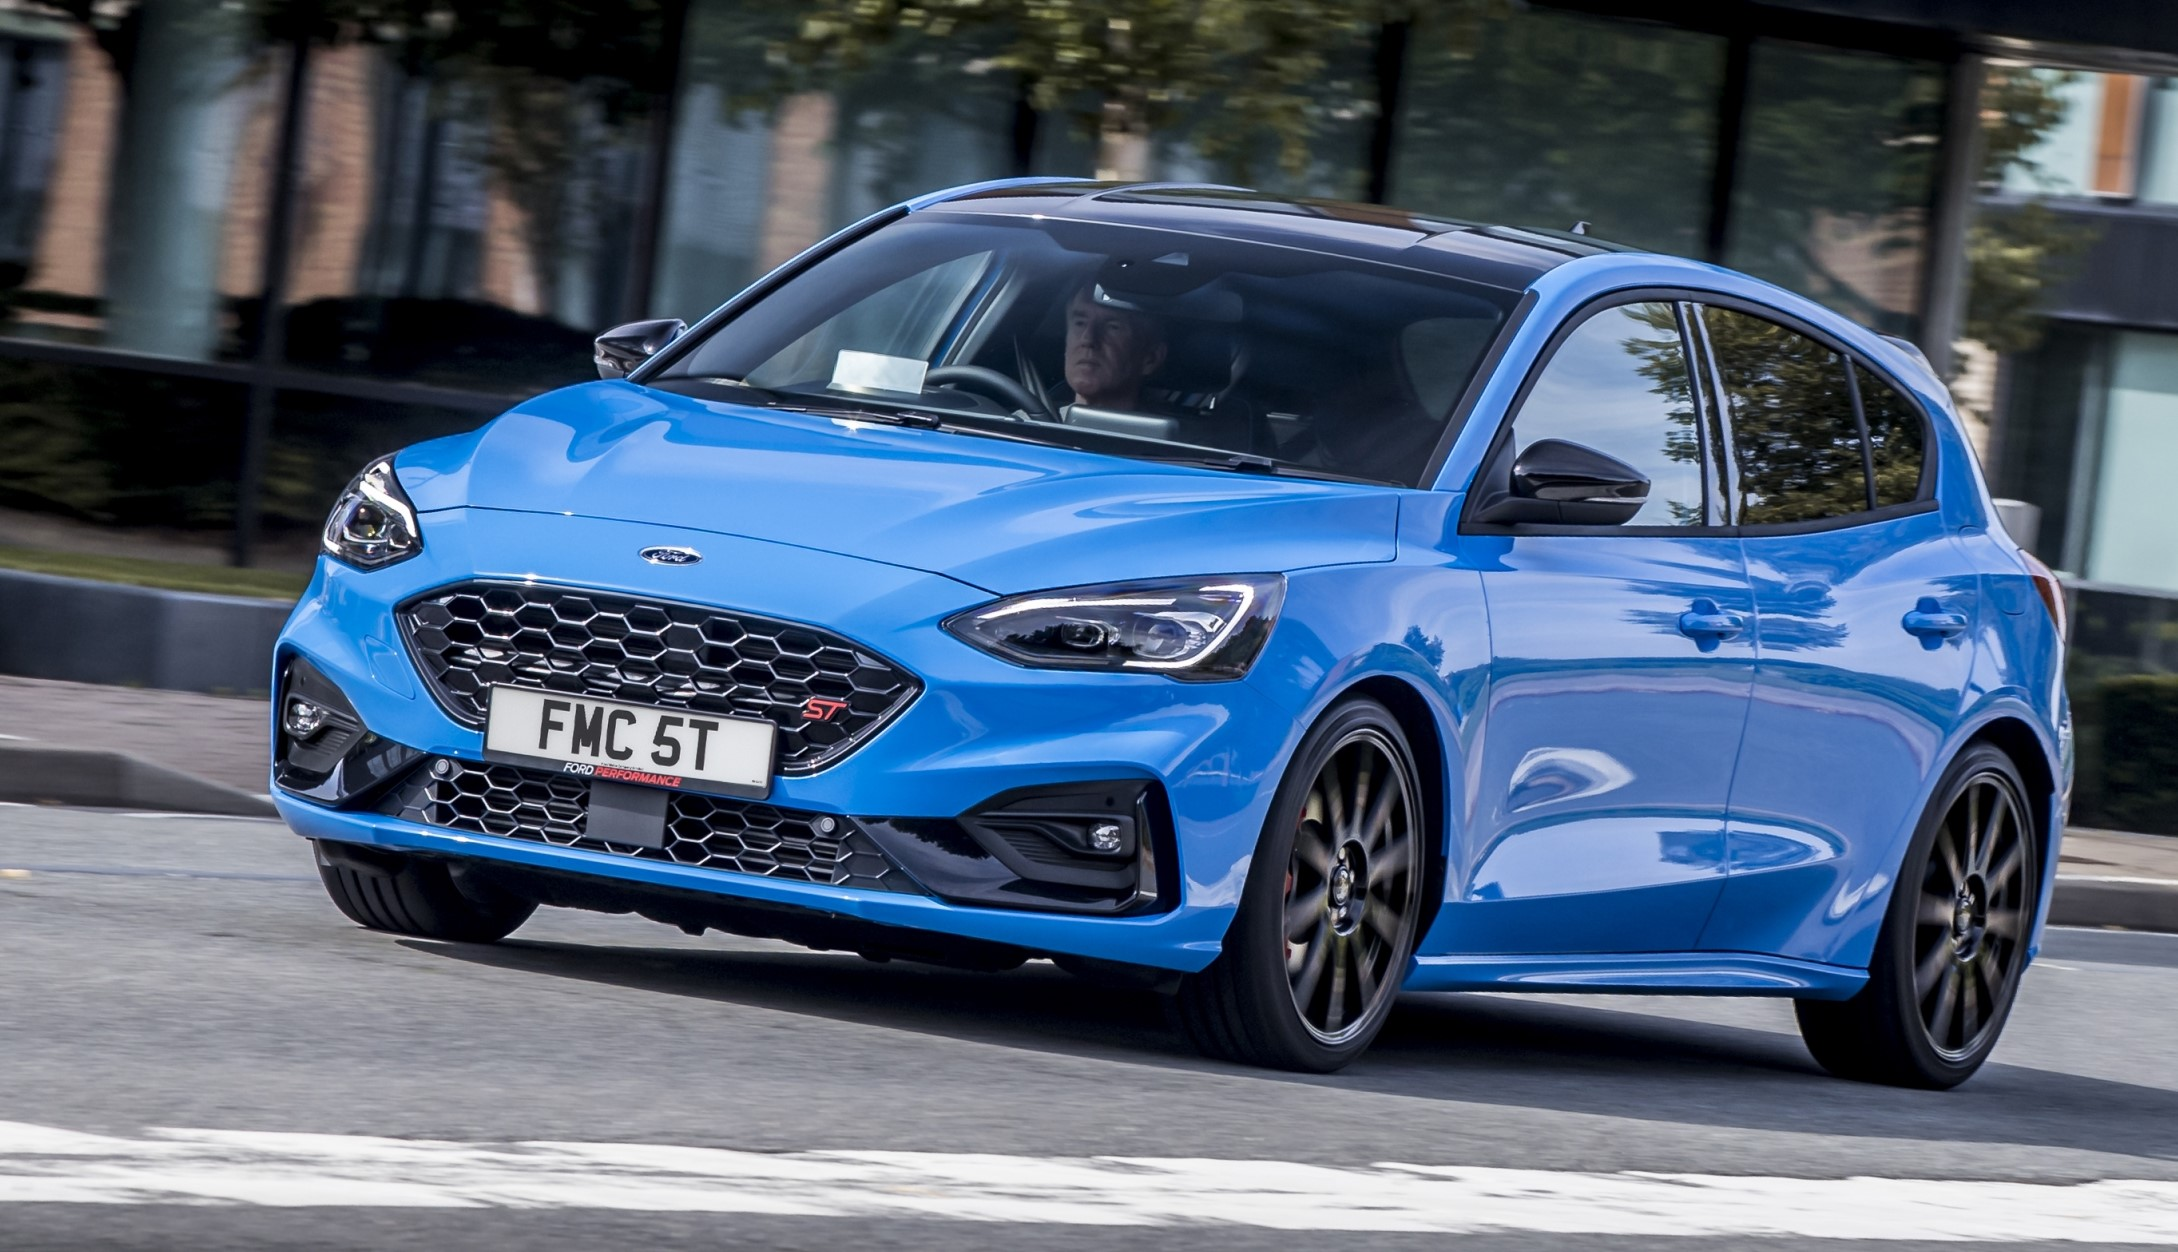 New Ford Focus ST Edition is revealed